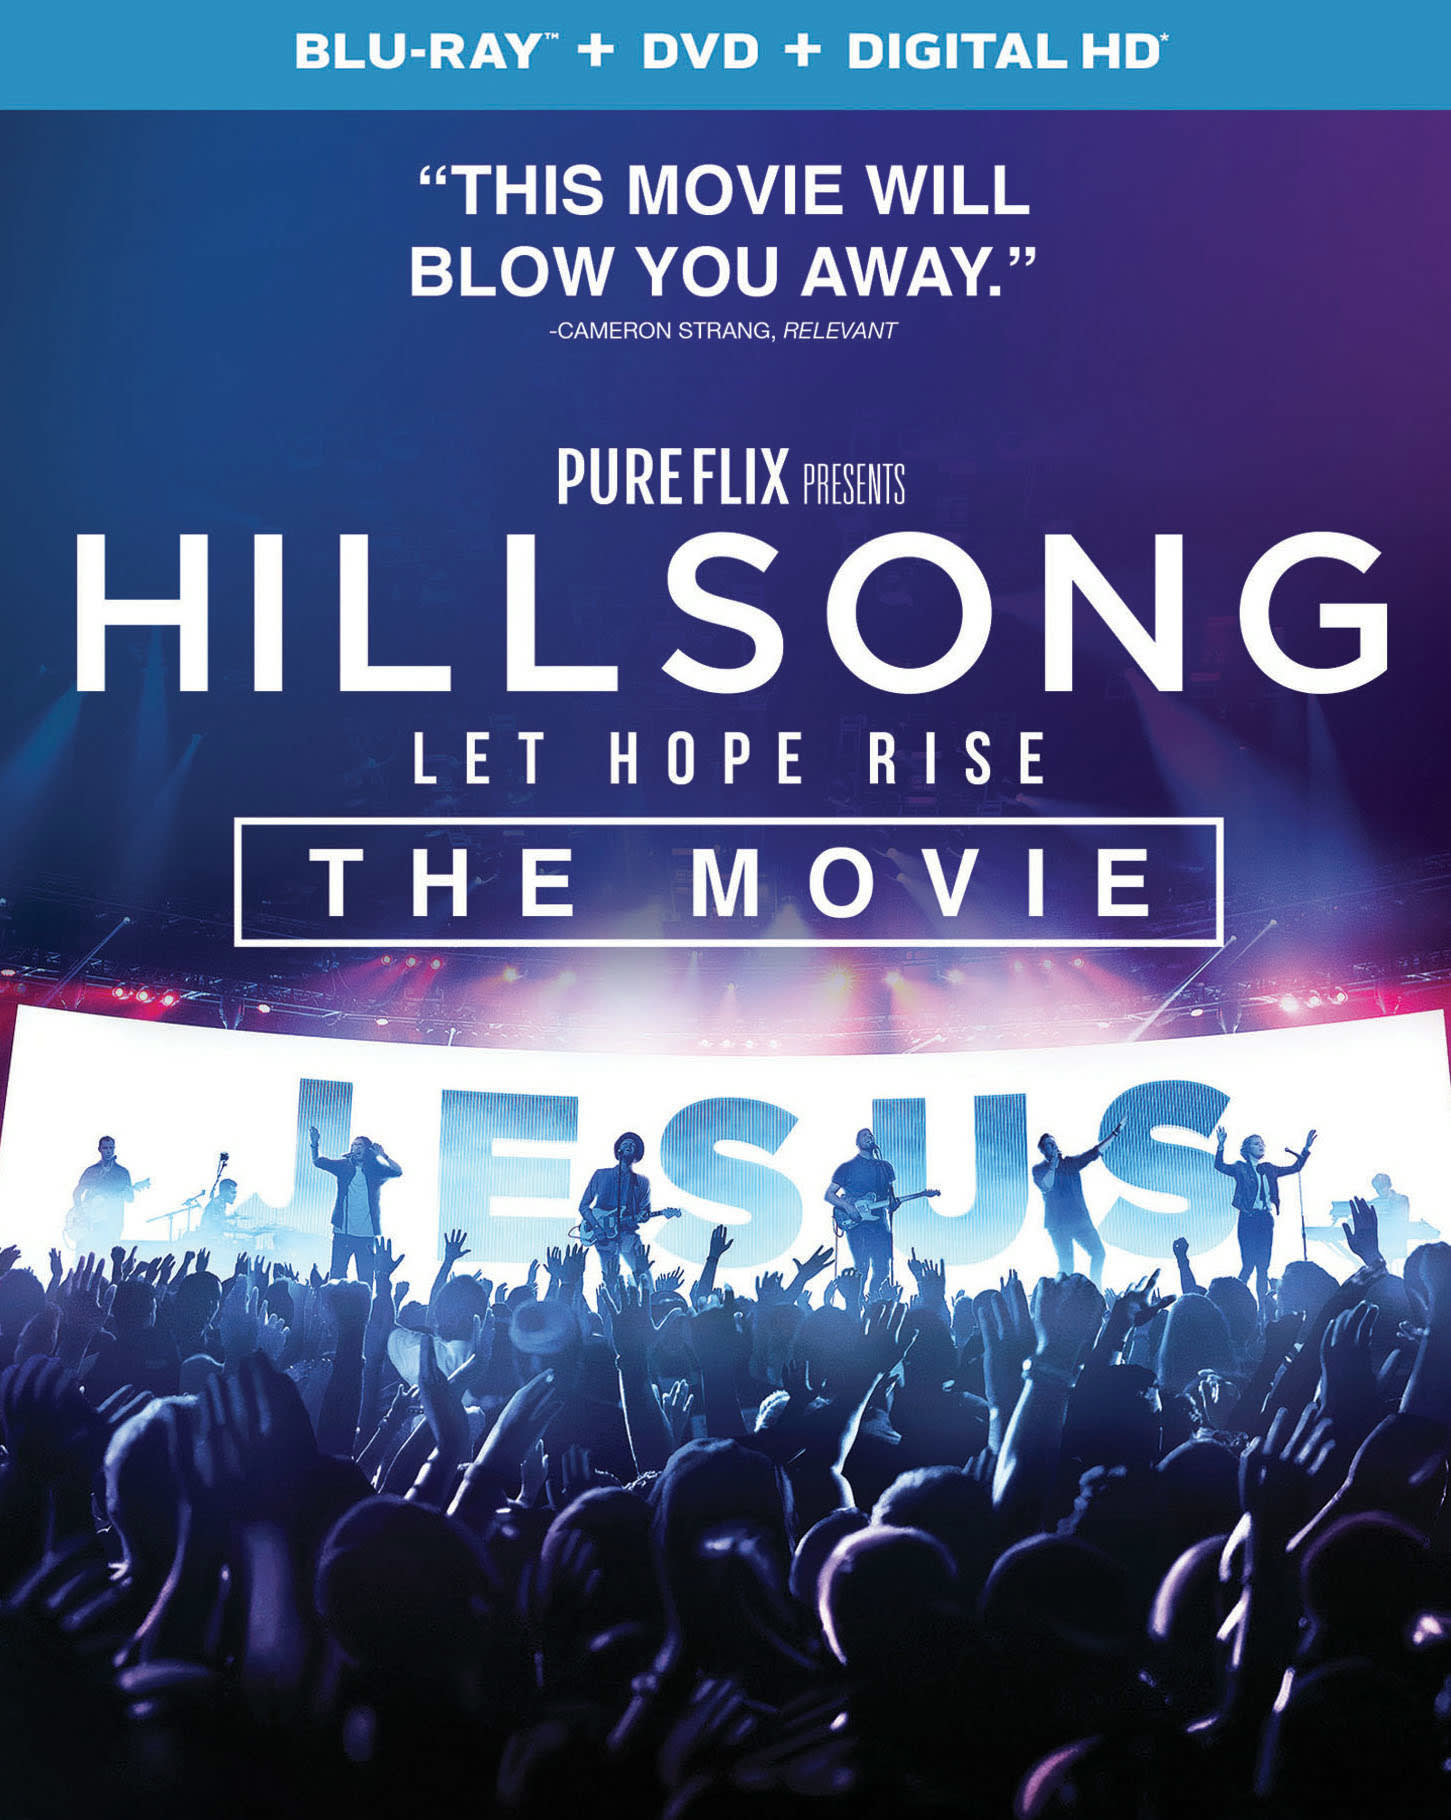 Hillsong: Let Hope Rise (DVD + Digital) [Blu-ray]